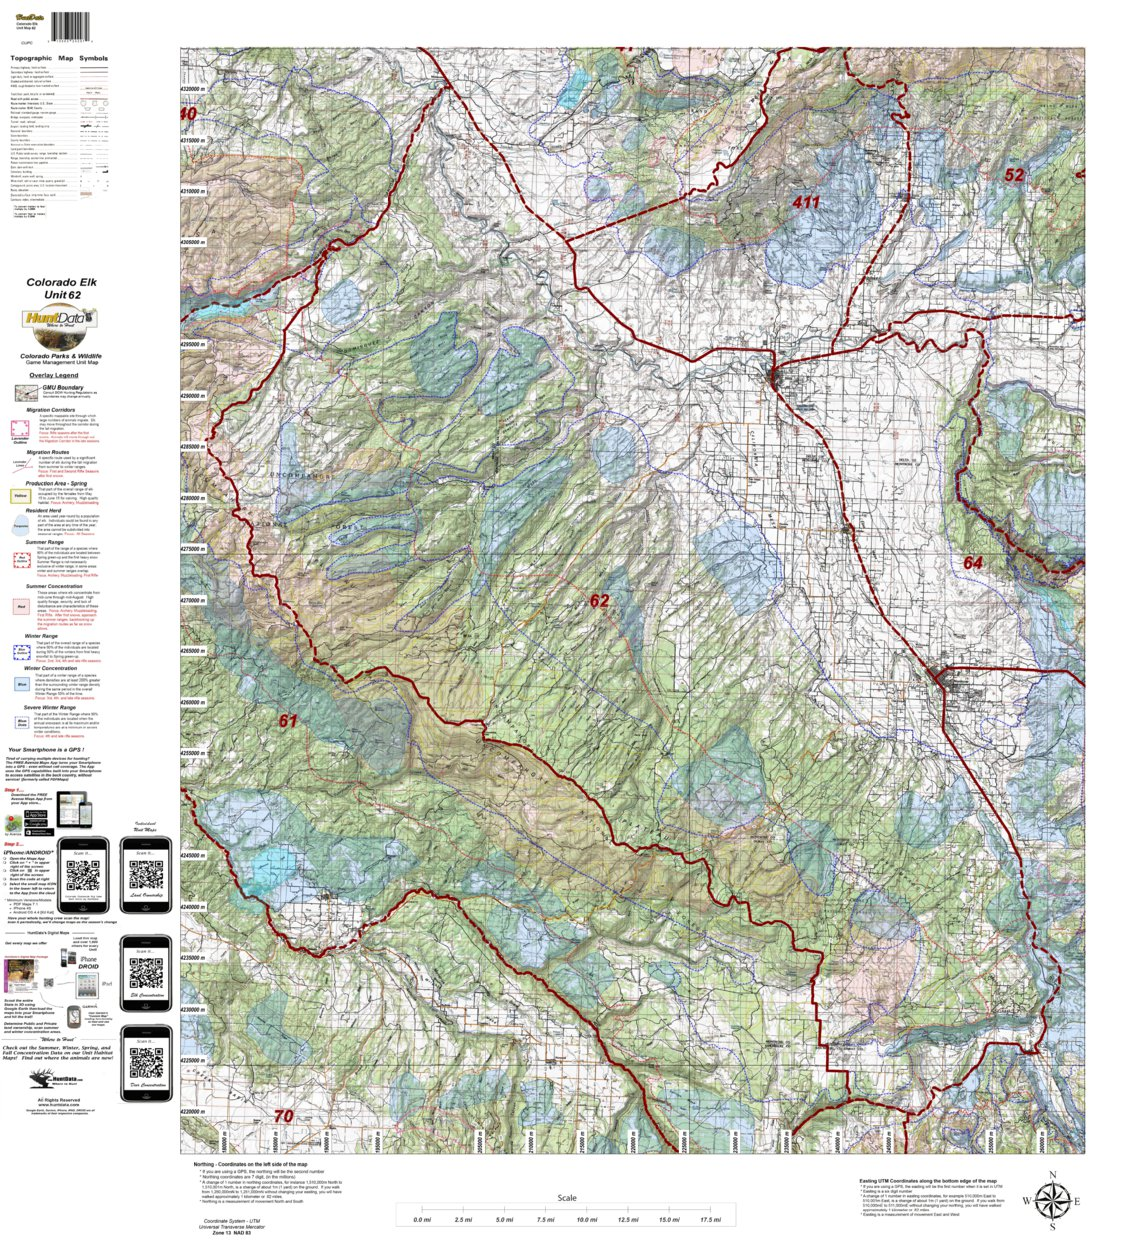 HuntData Colorado Unit 62 Elk Concentration - HuntData LLC - Avenza Maps